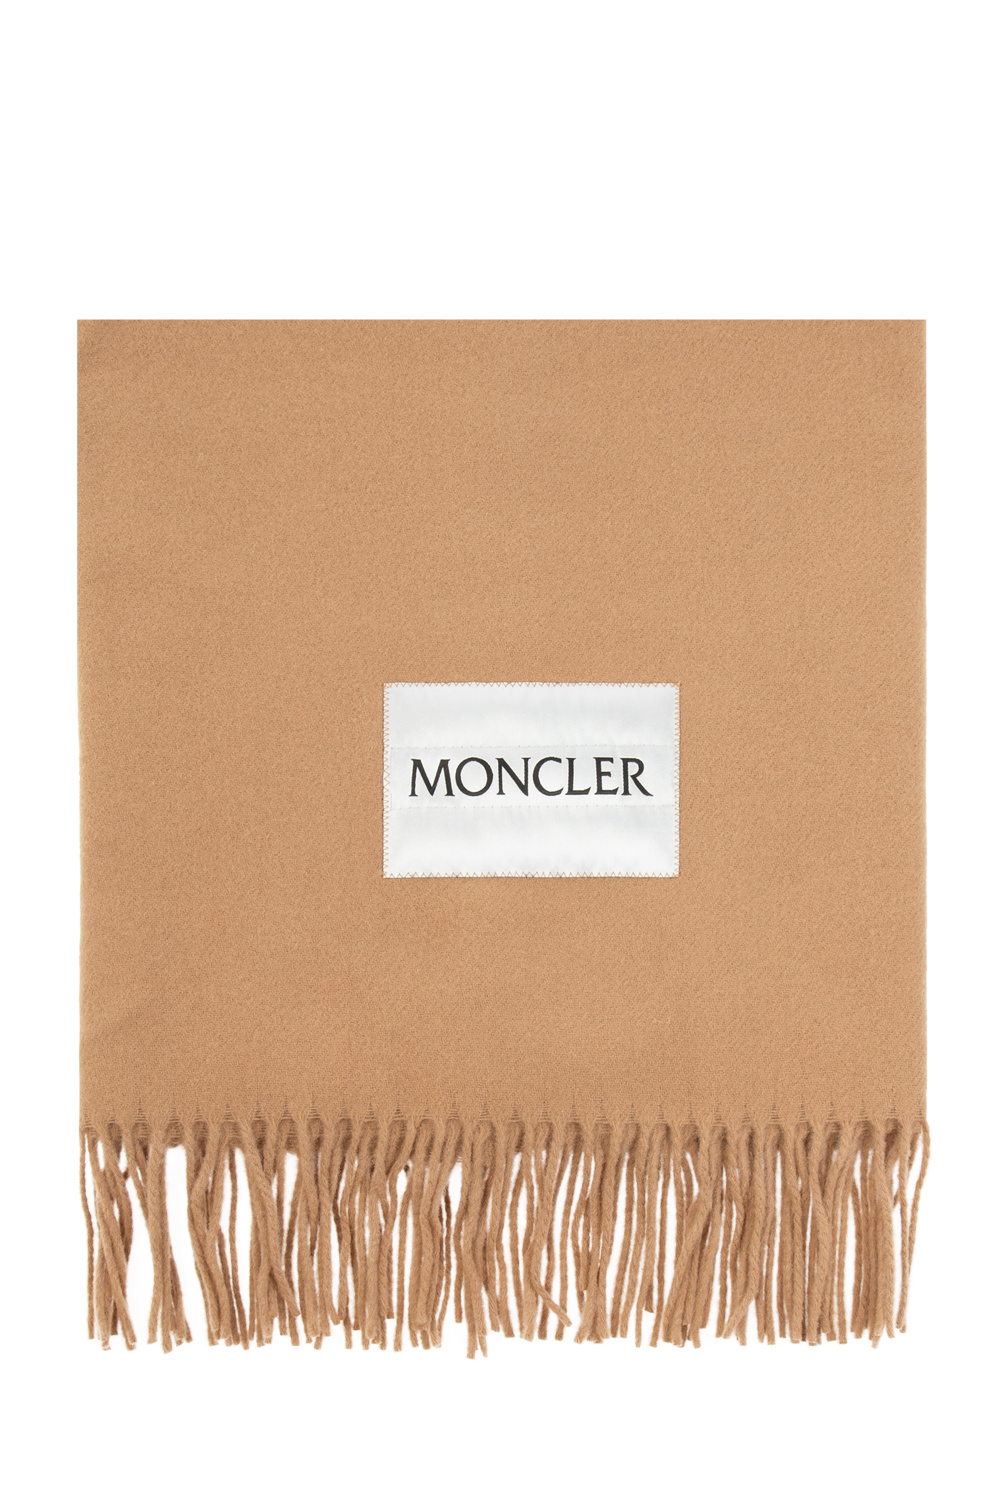 Moncler Scarf with logo